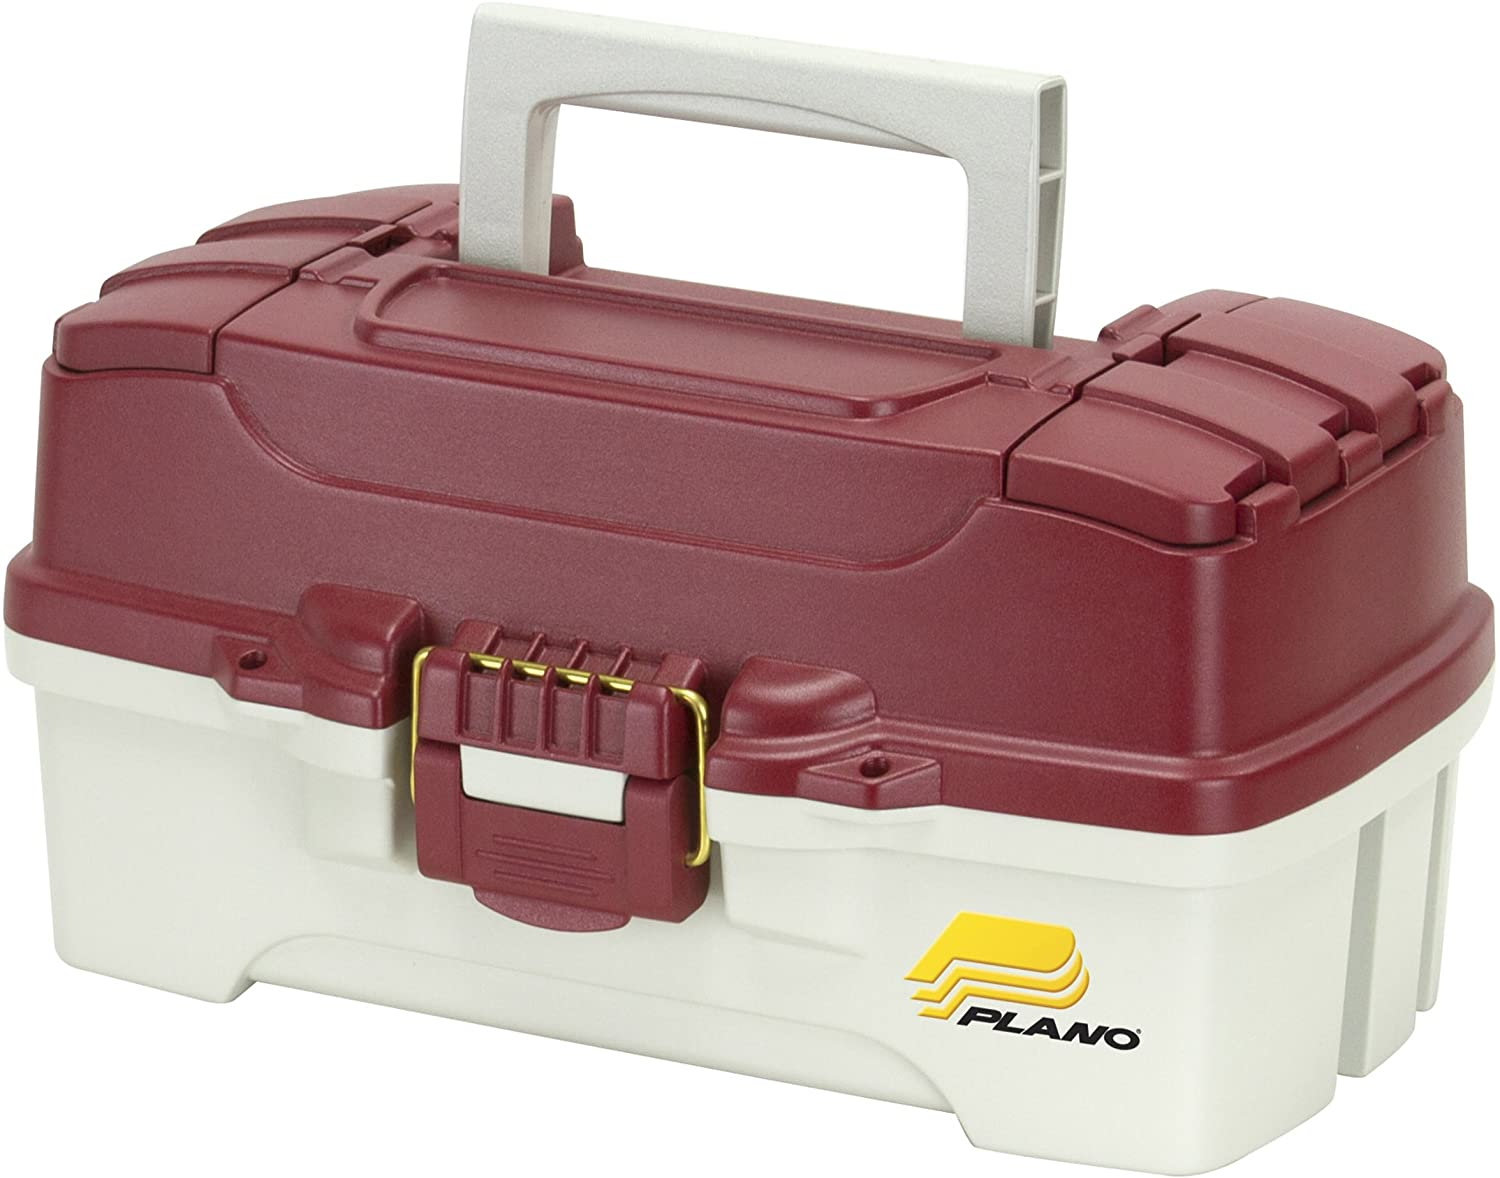 Plano 1-Tray Tackle Box with Dual Top Access, Red Metallic Off White, Premium Tackle Storage